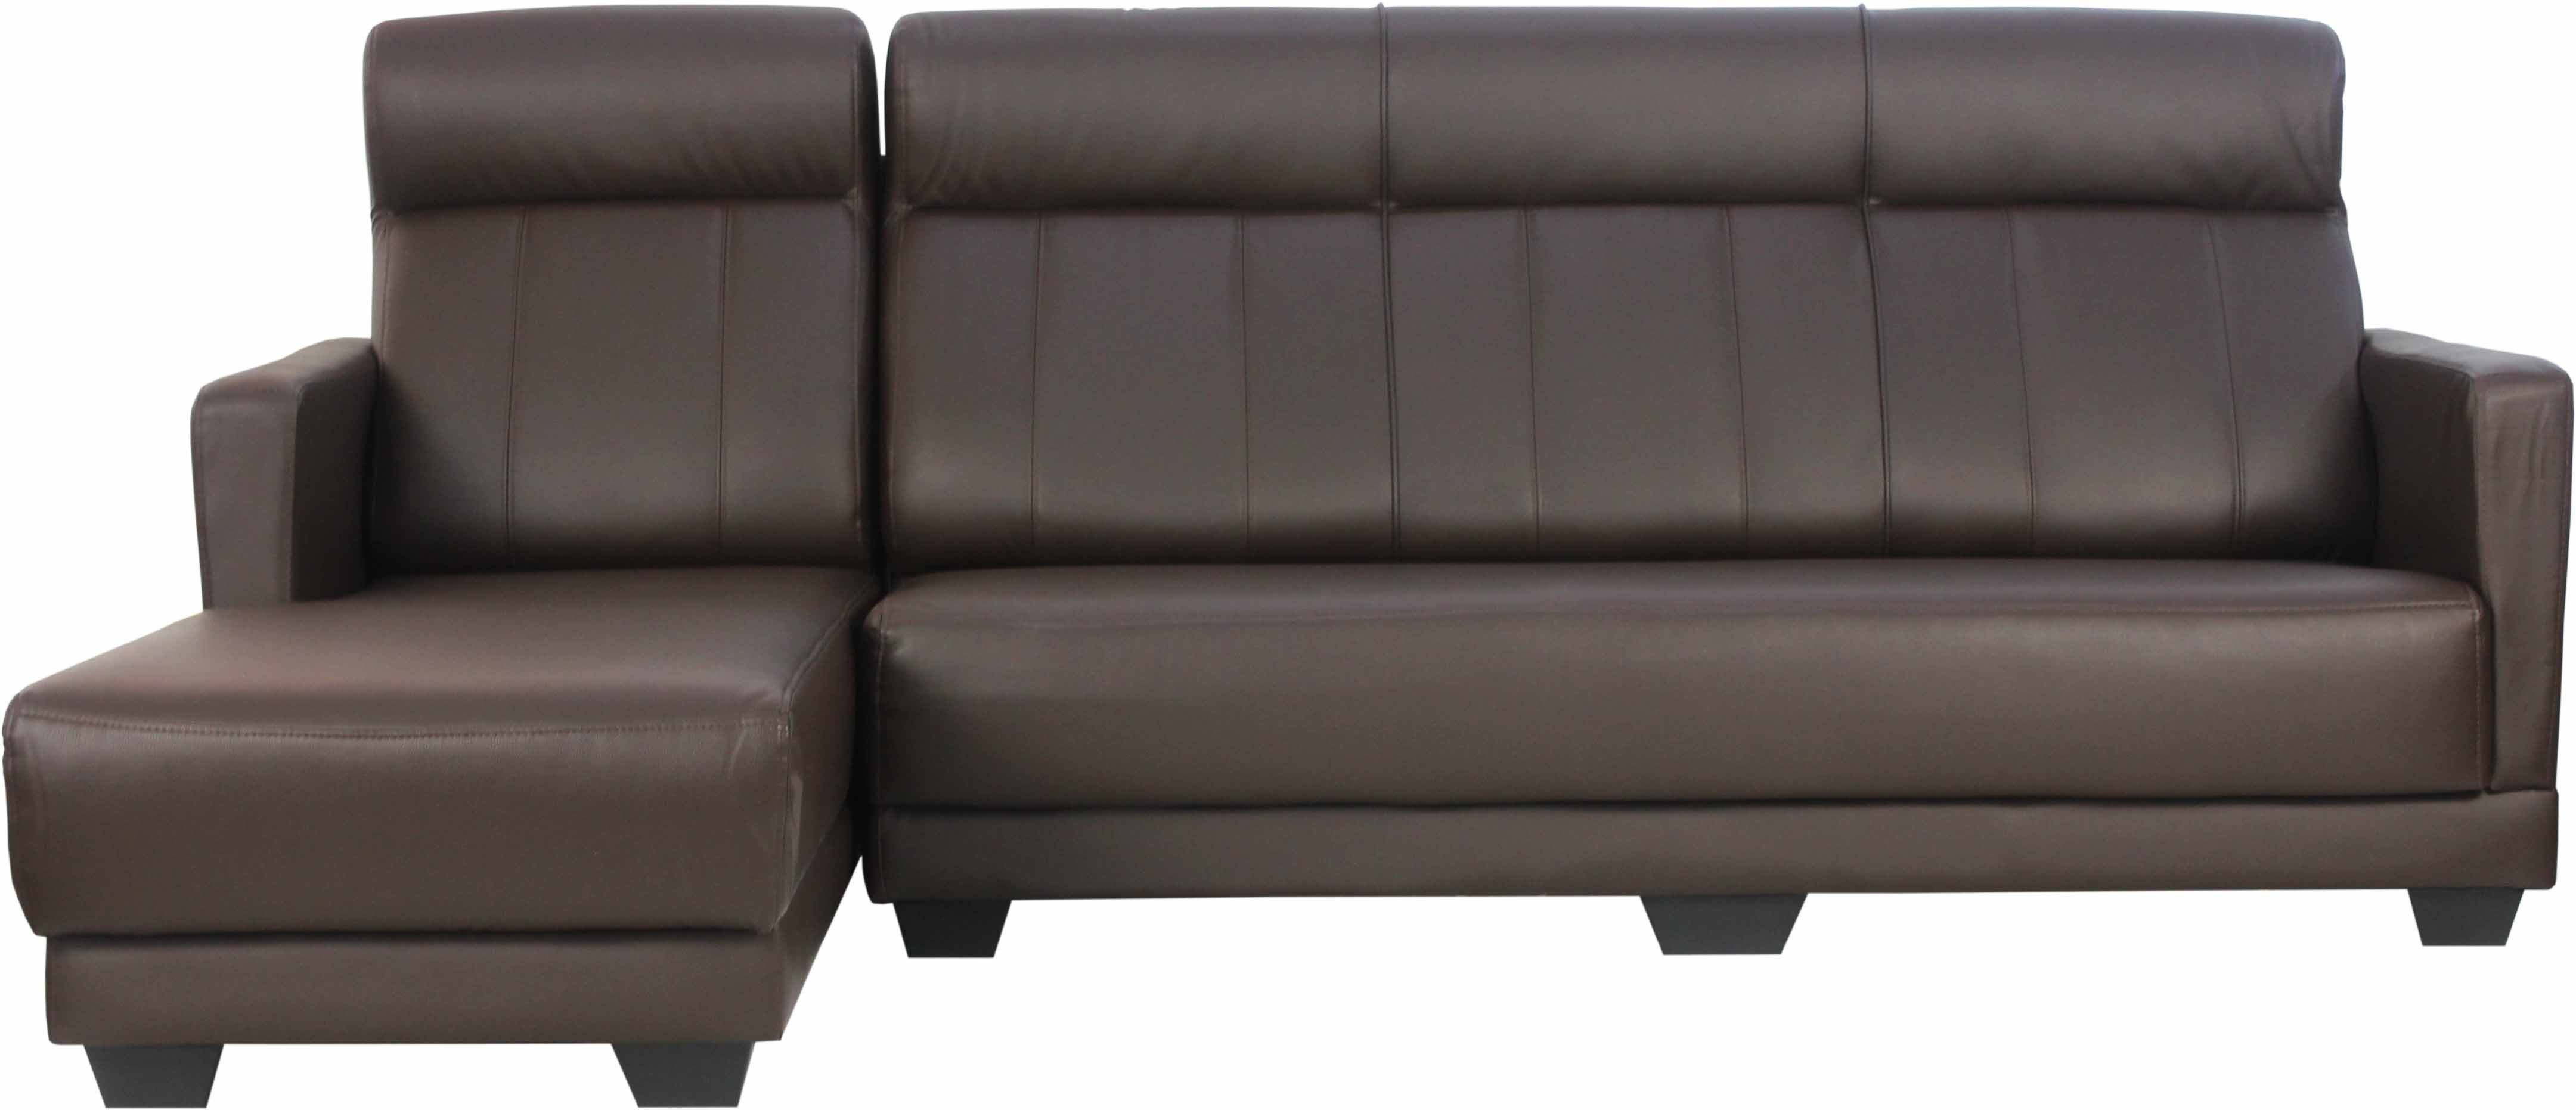 Stacy 4 Seater L Shaped Sofa Set Furniture & Home Décor